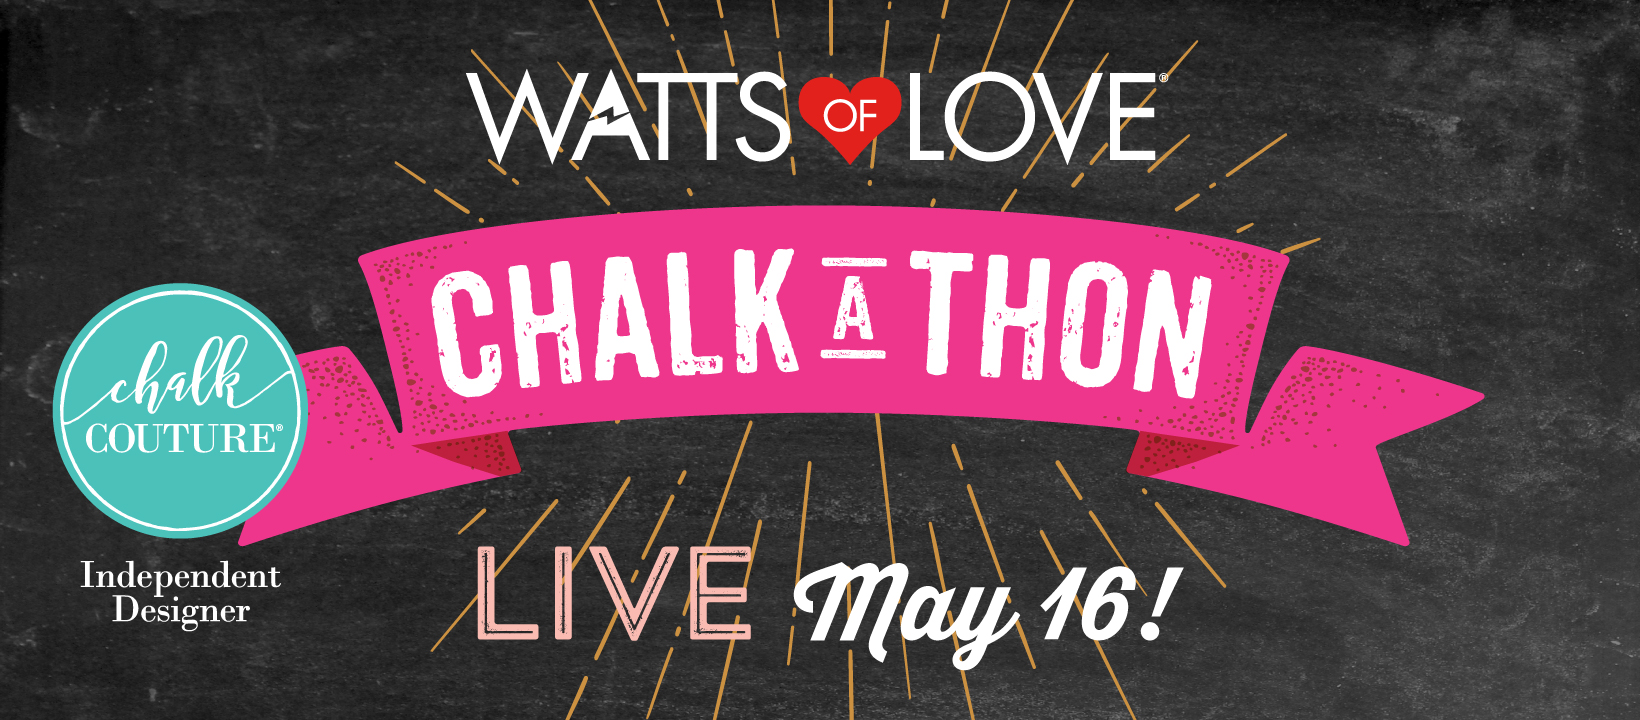 Watts of Love Chalk-A-Thon!